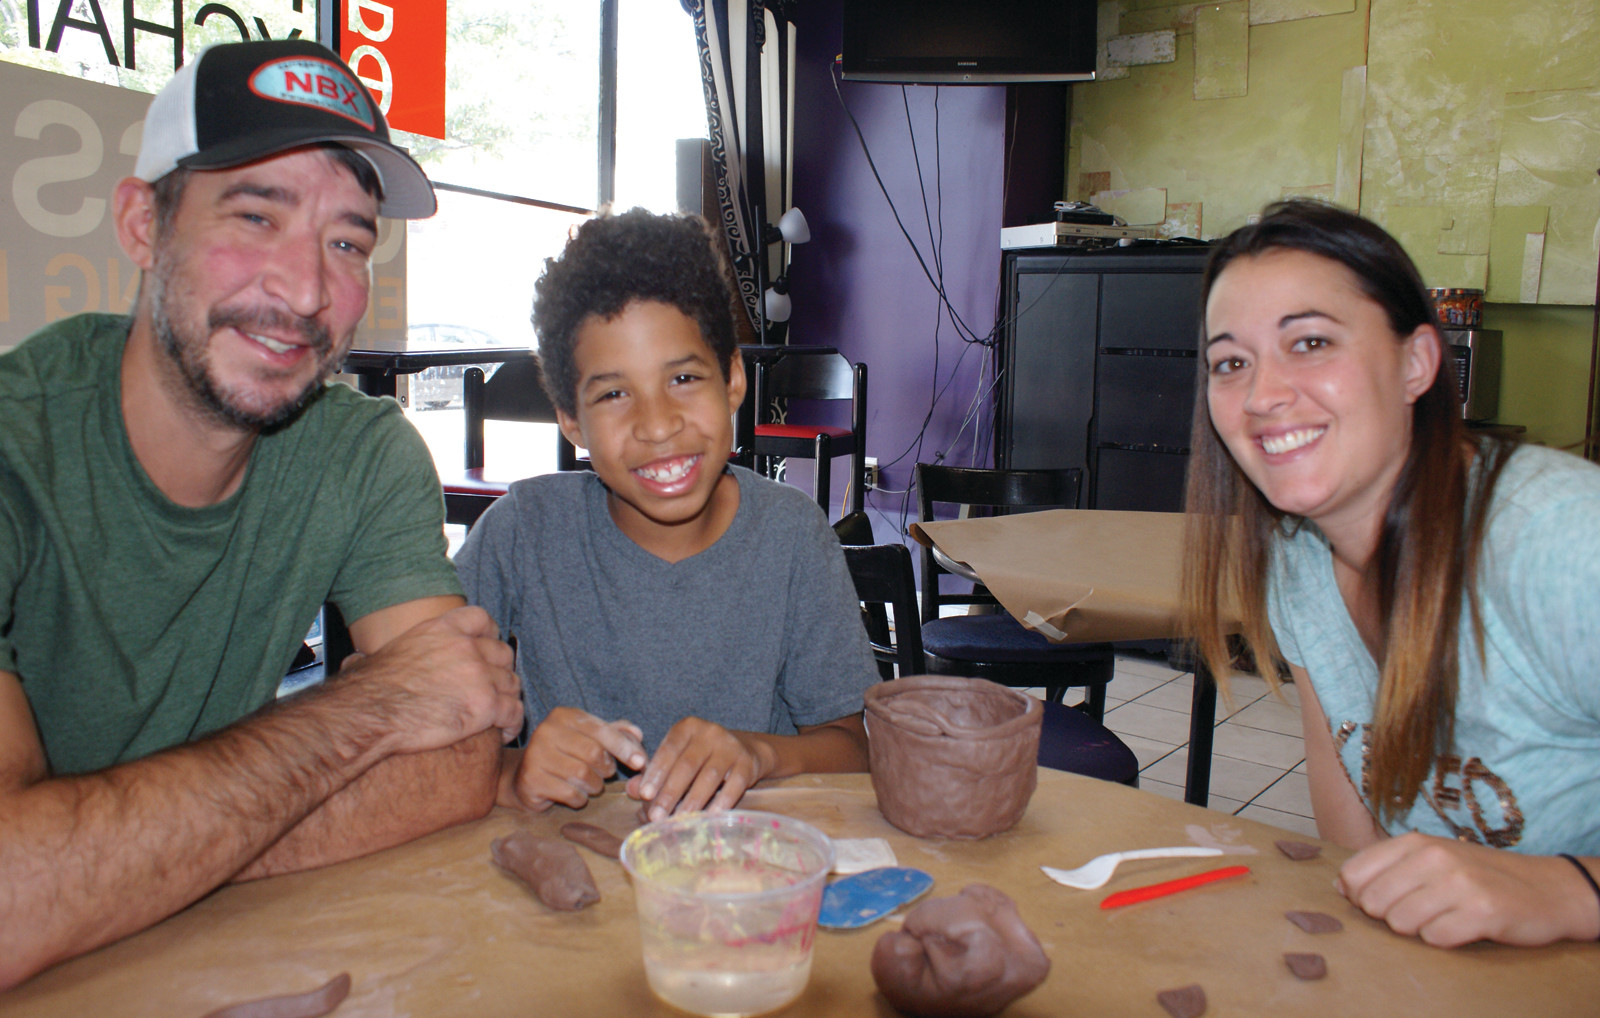 LEARNING TO WORK WITH CLAY: Kayden Johnson, age 9, learned how to work with clay at the Artists' Exchange's Craft Bash on Aug. 26. Pictured with Kayden are his father, Joshua Williams and his friend Kristen Muto.